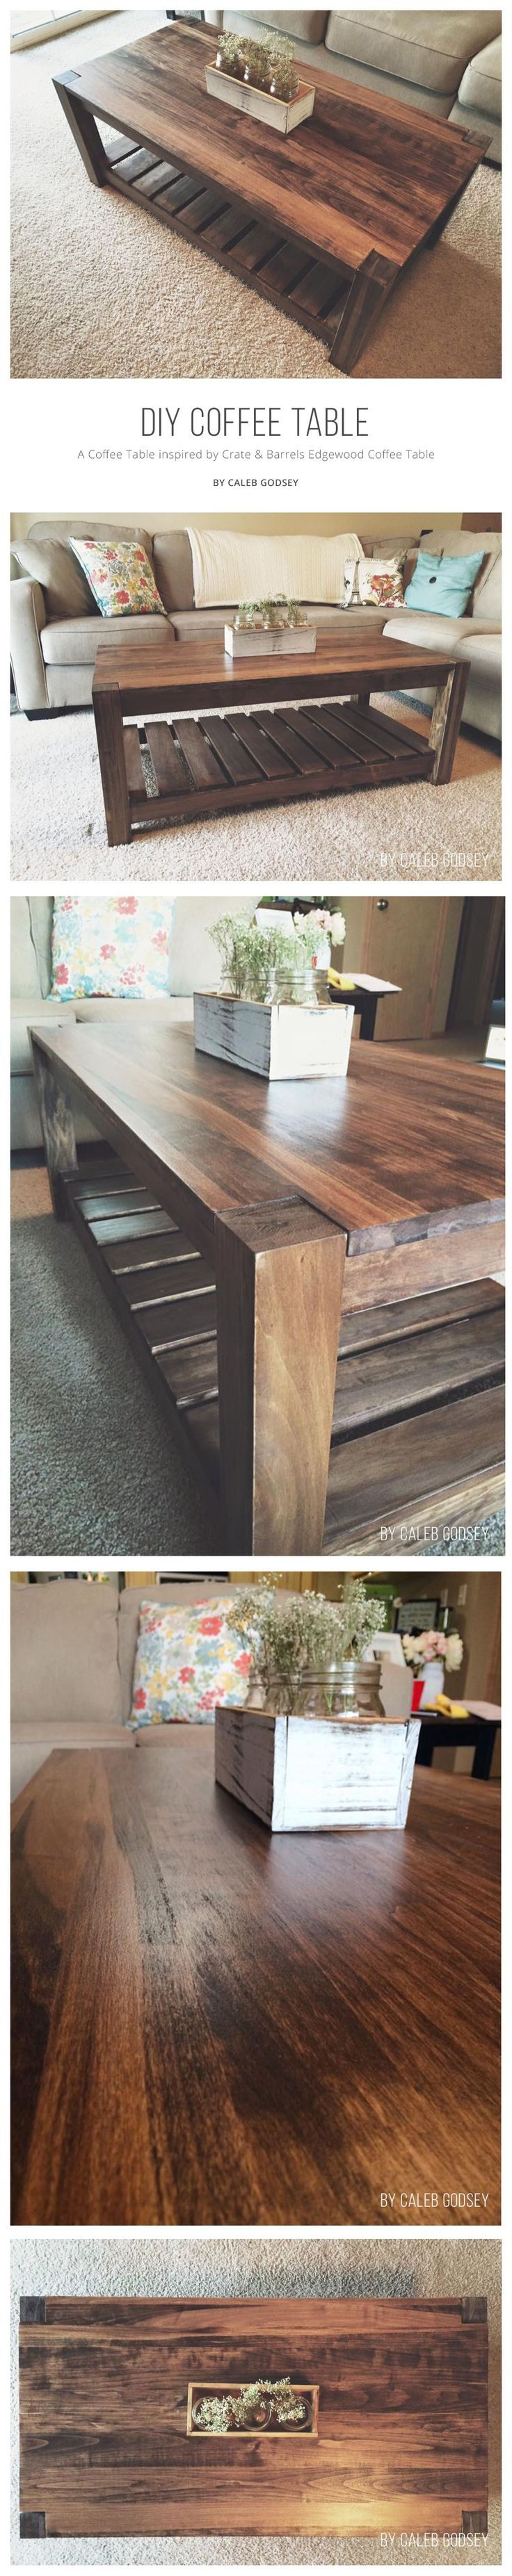 26 Best Coffee Table Diy Plans Images On Pinterest -